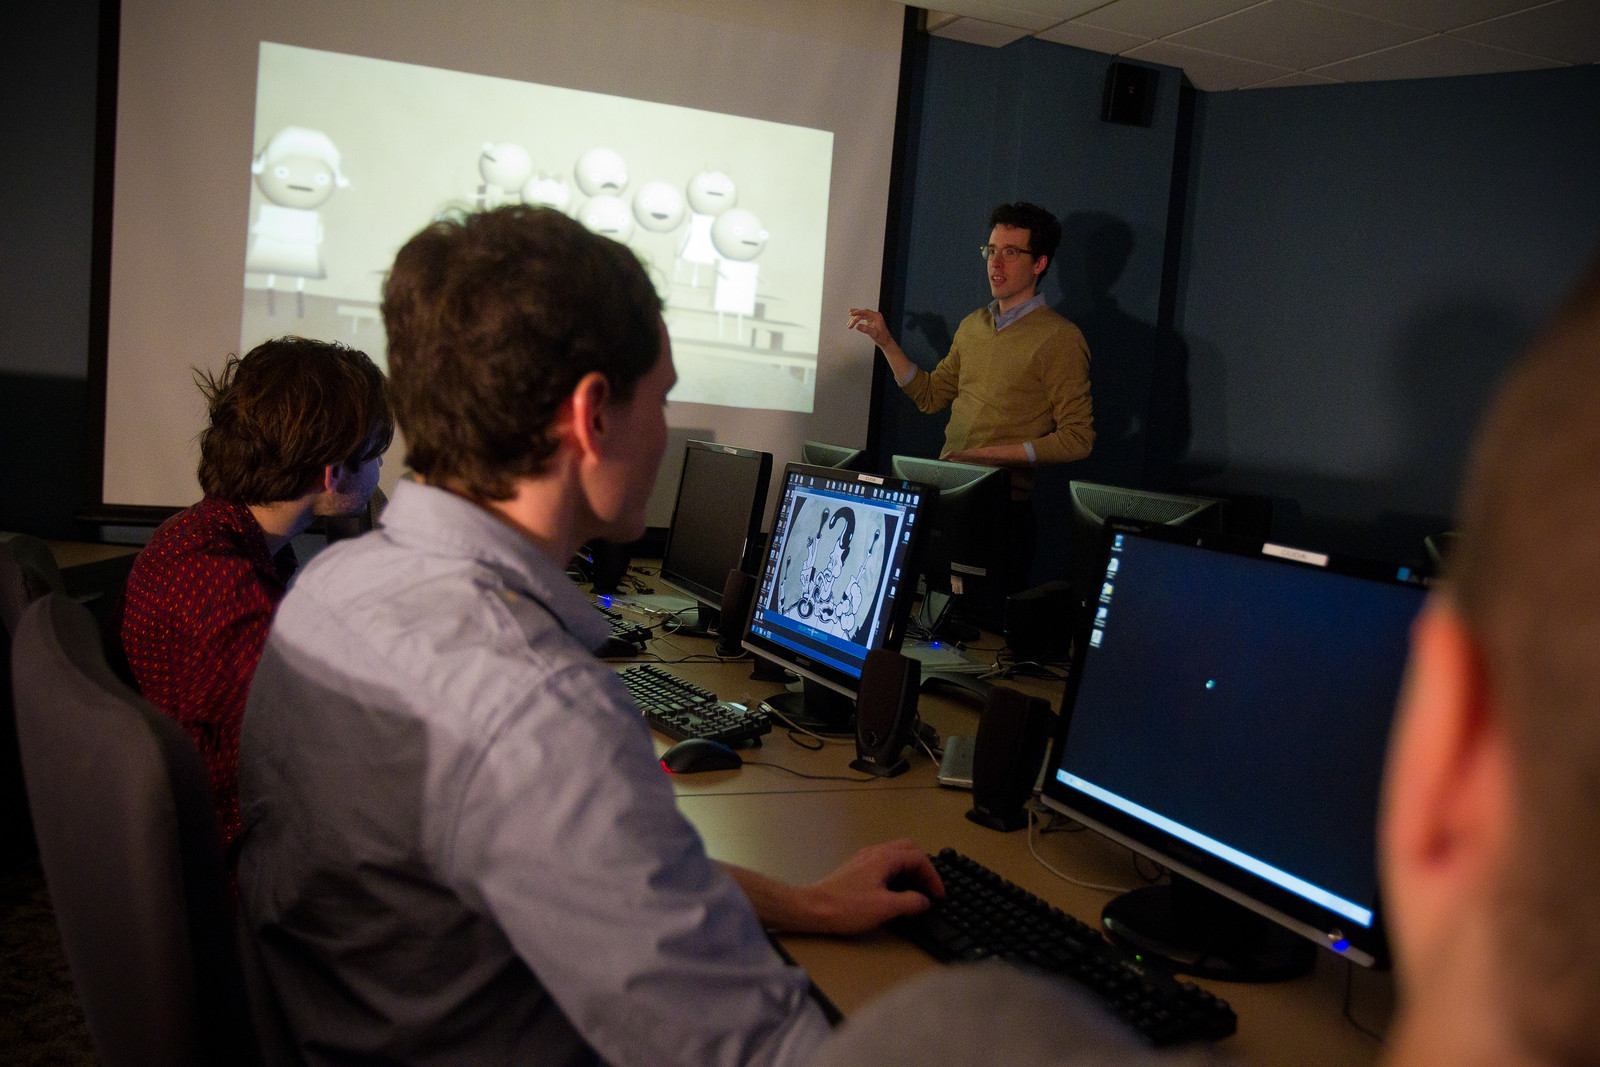 Students with computers in darkened classroom in front of projector screen